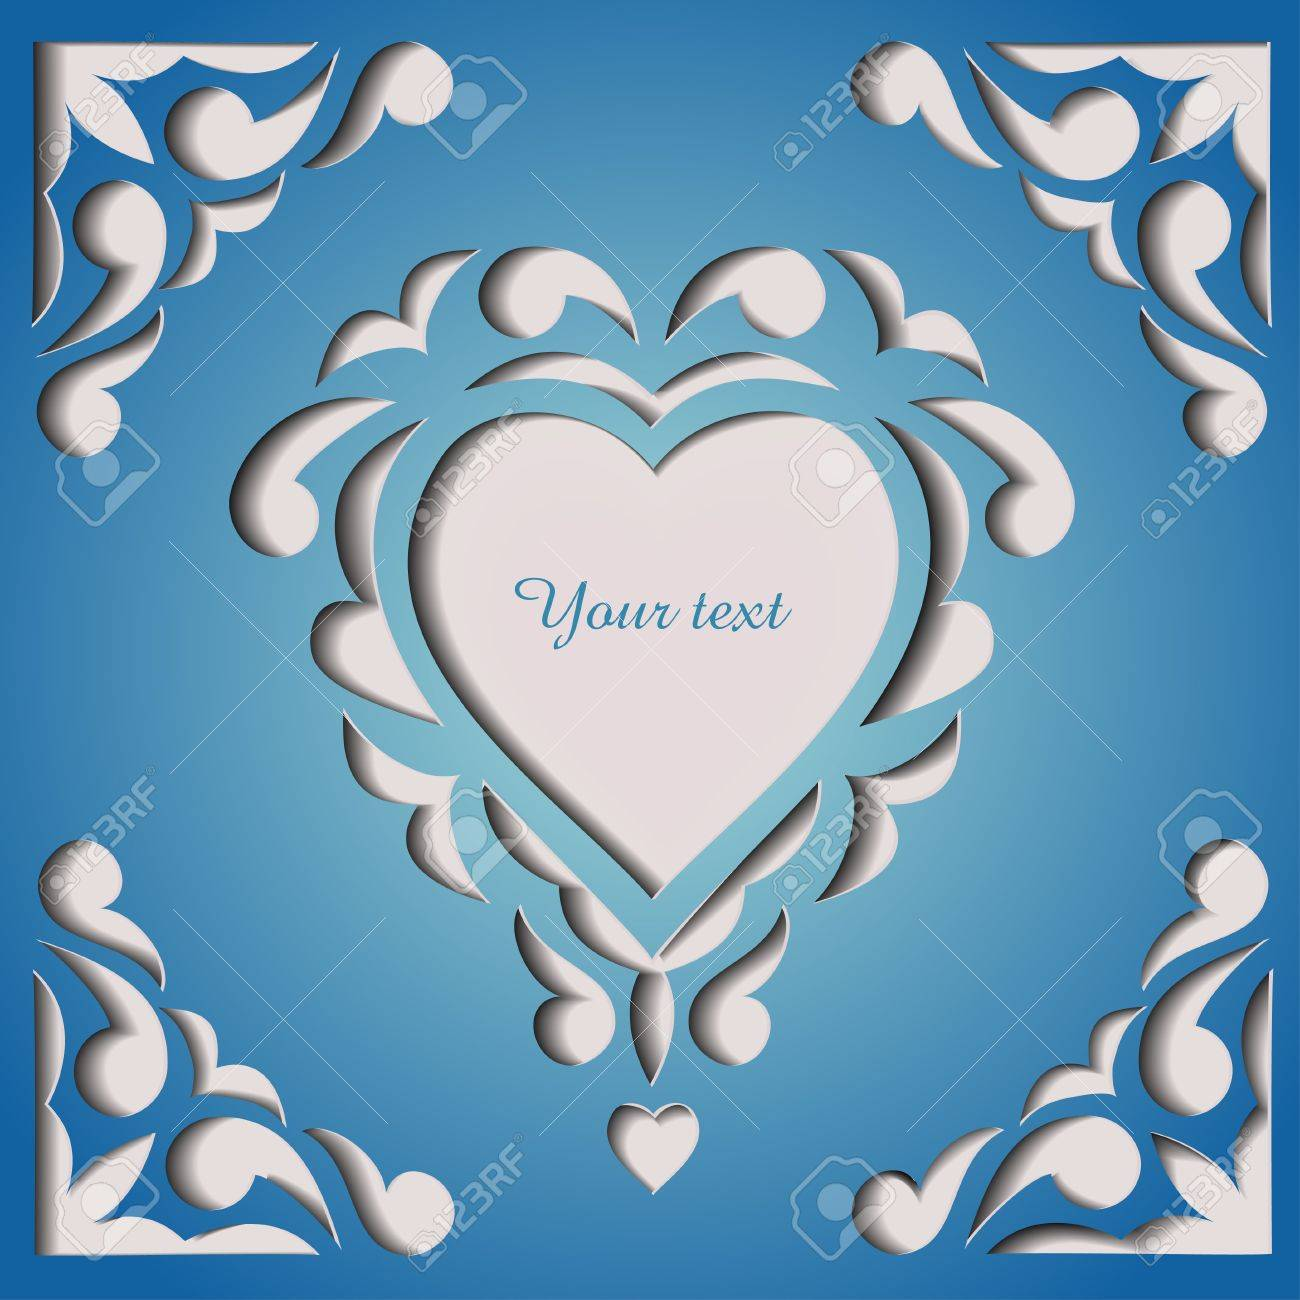 Paper Cutout Card With Heart Template Frame Design Royalty Free ...